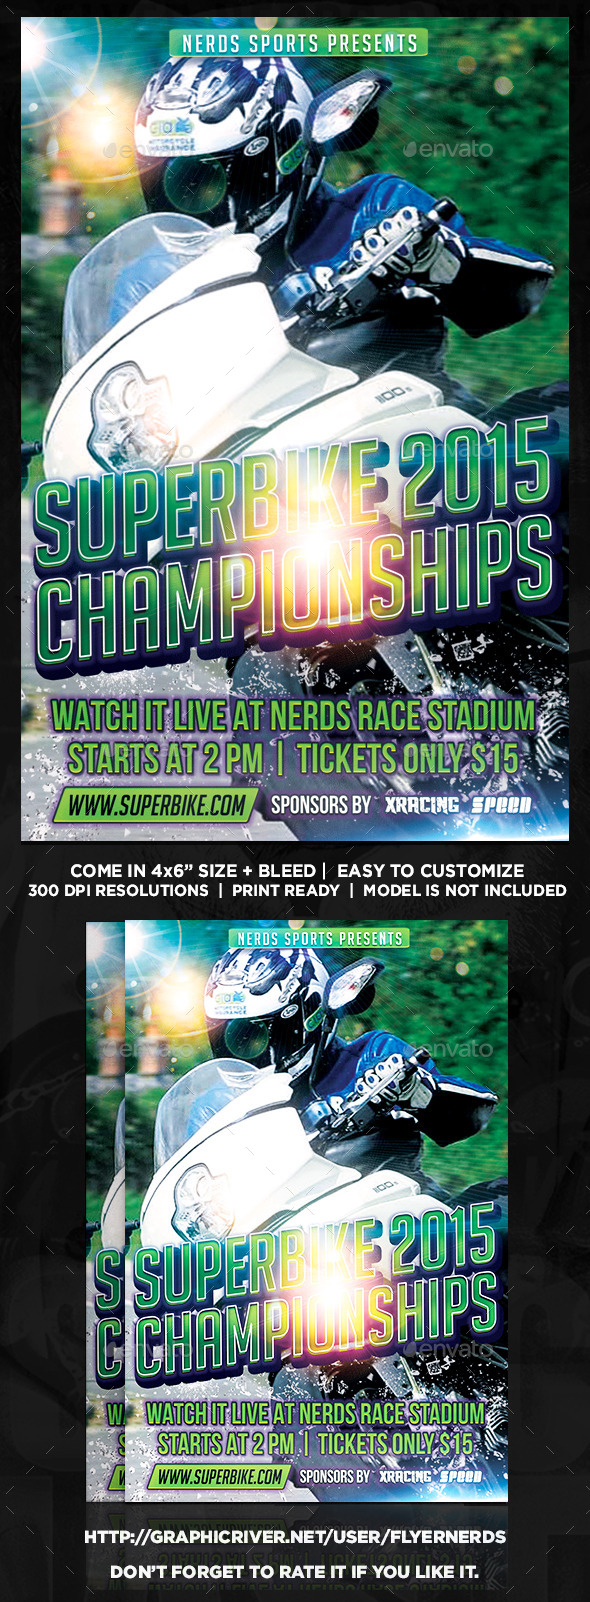 GraphicRiver Superbike 2015 Championships Sports Flyer 9911517